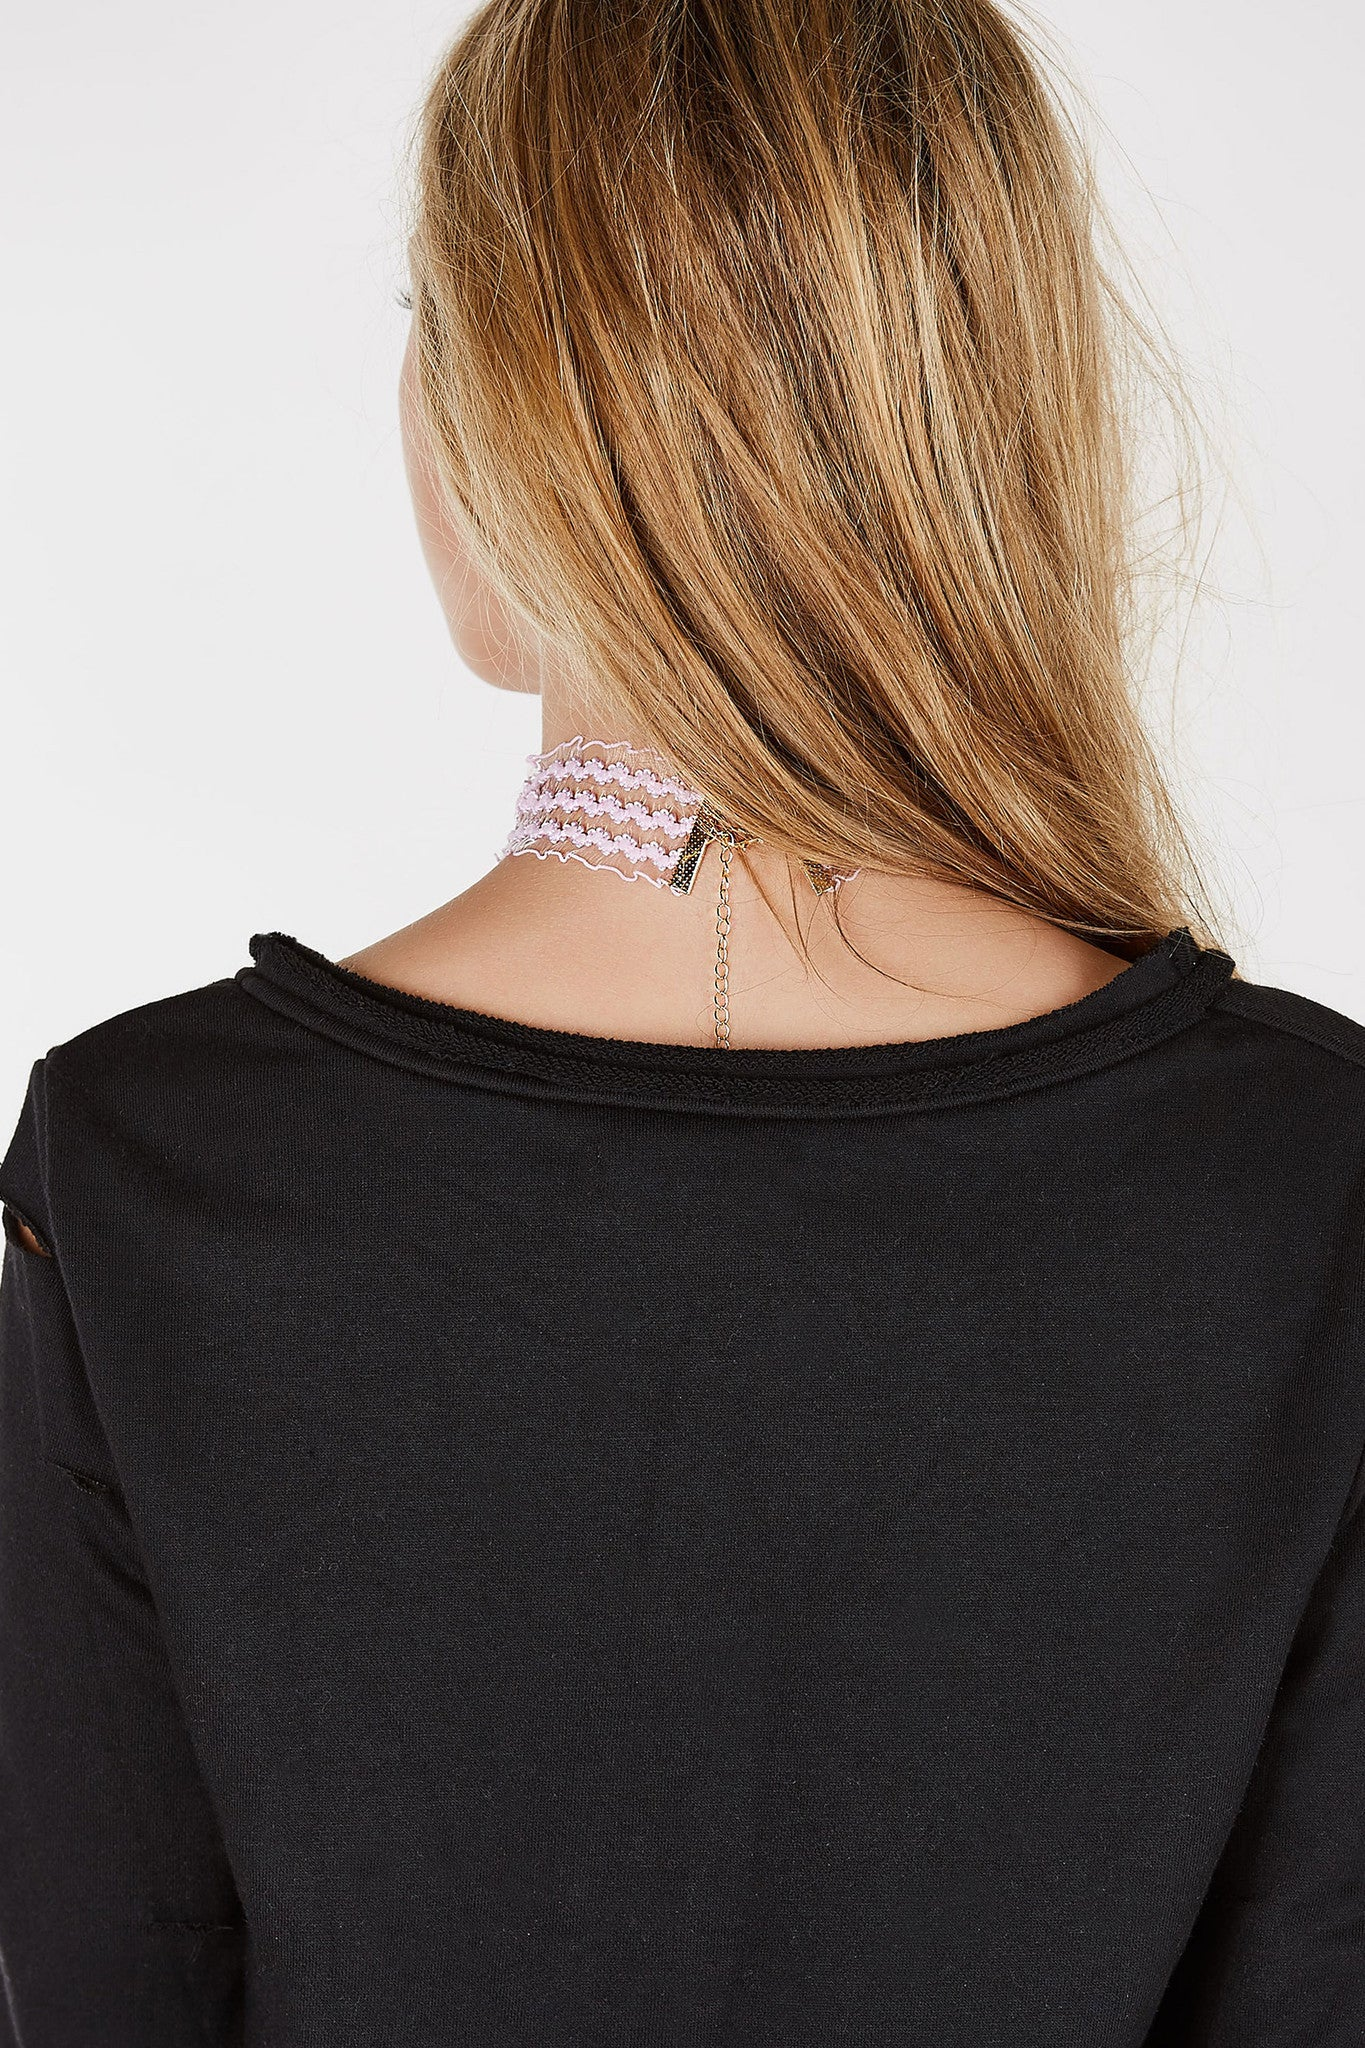 Lace crochet choker with ruffle inspired hem. Lobster clasp for fit and closure.